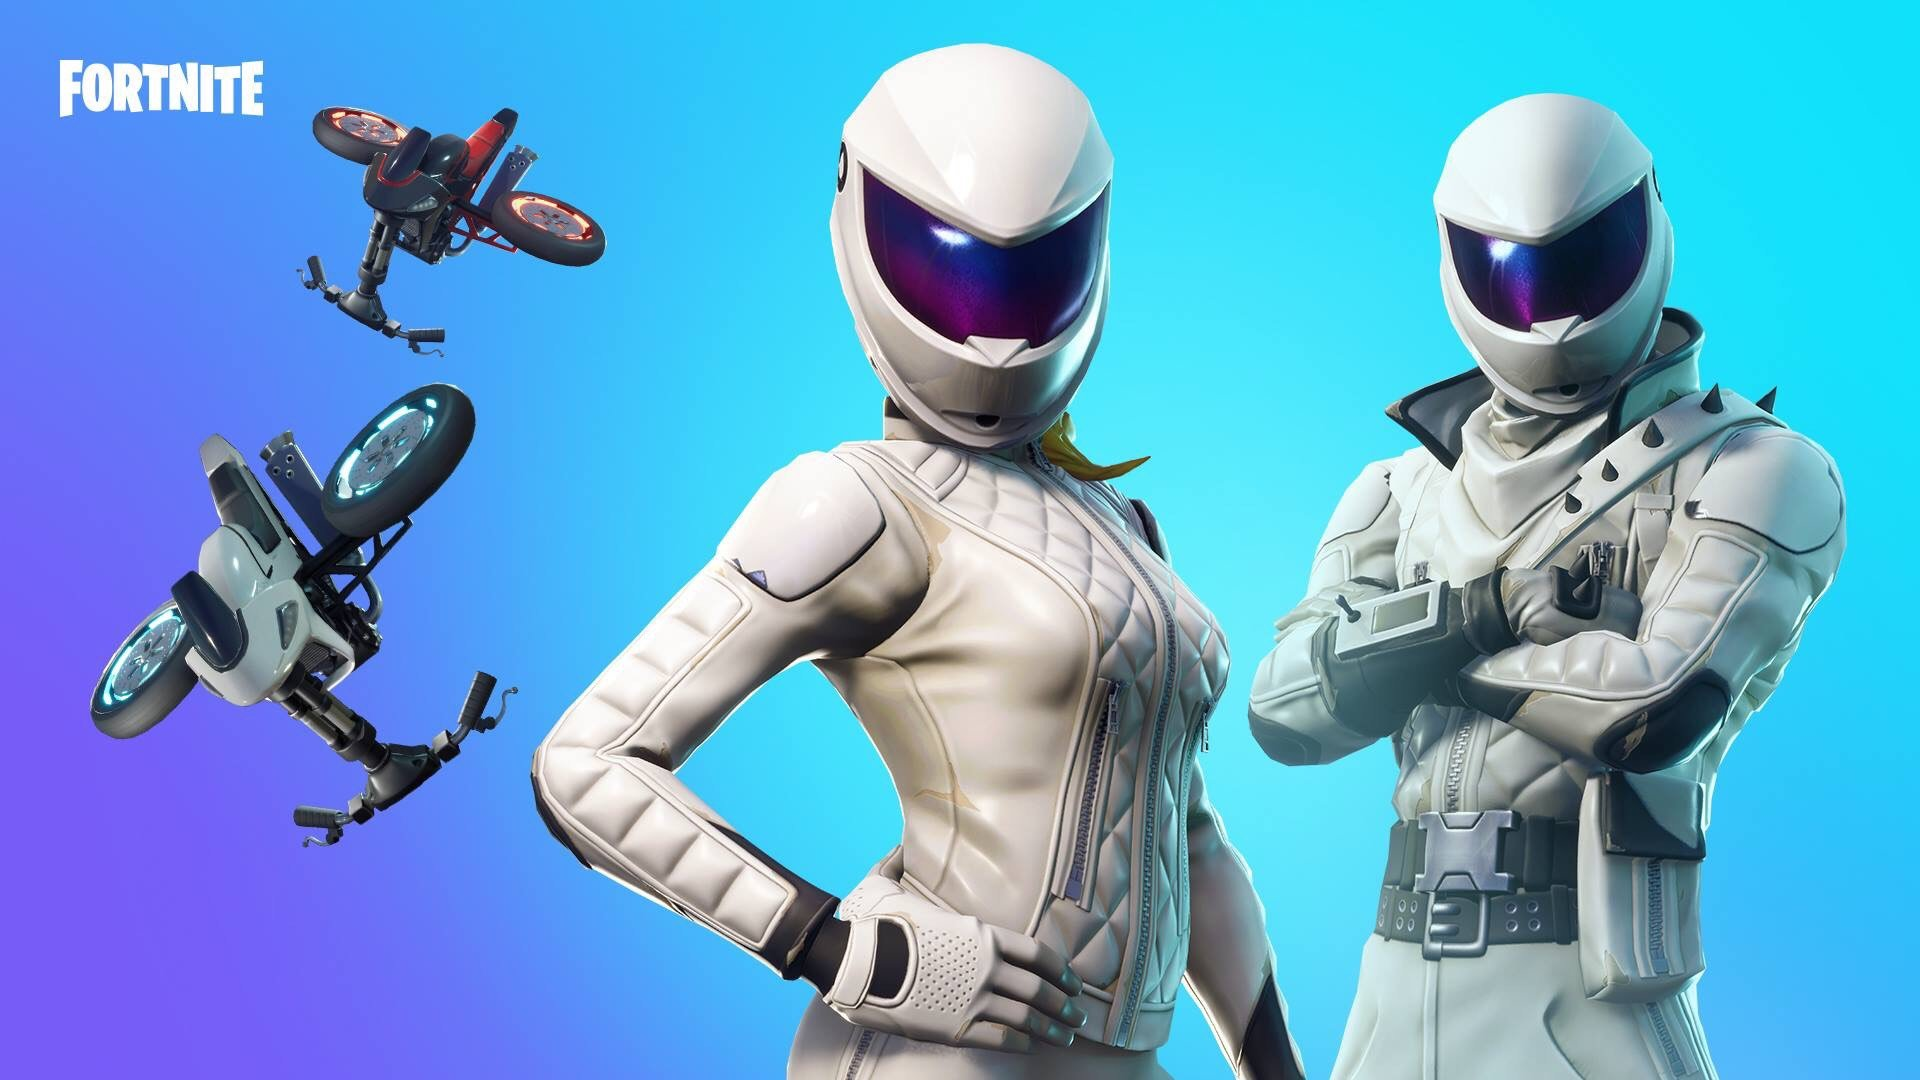 whiteout and overtaker outfits get new styles in fortnite - fortnite new elite agent style